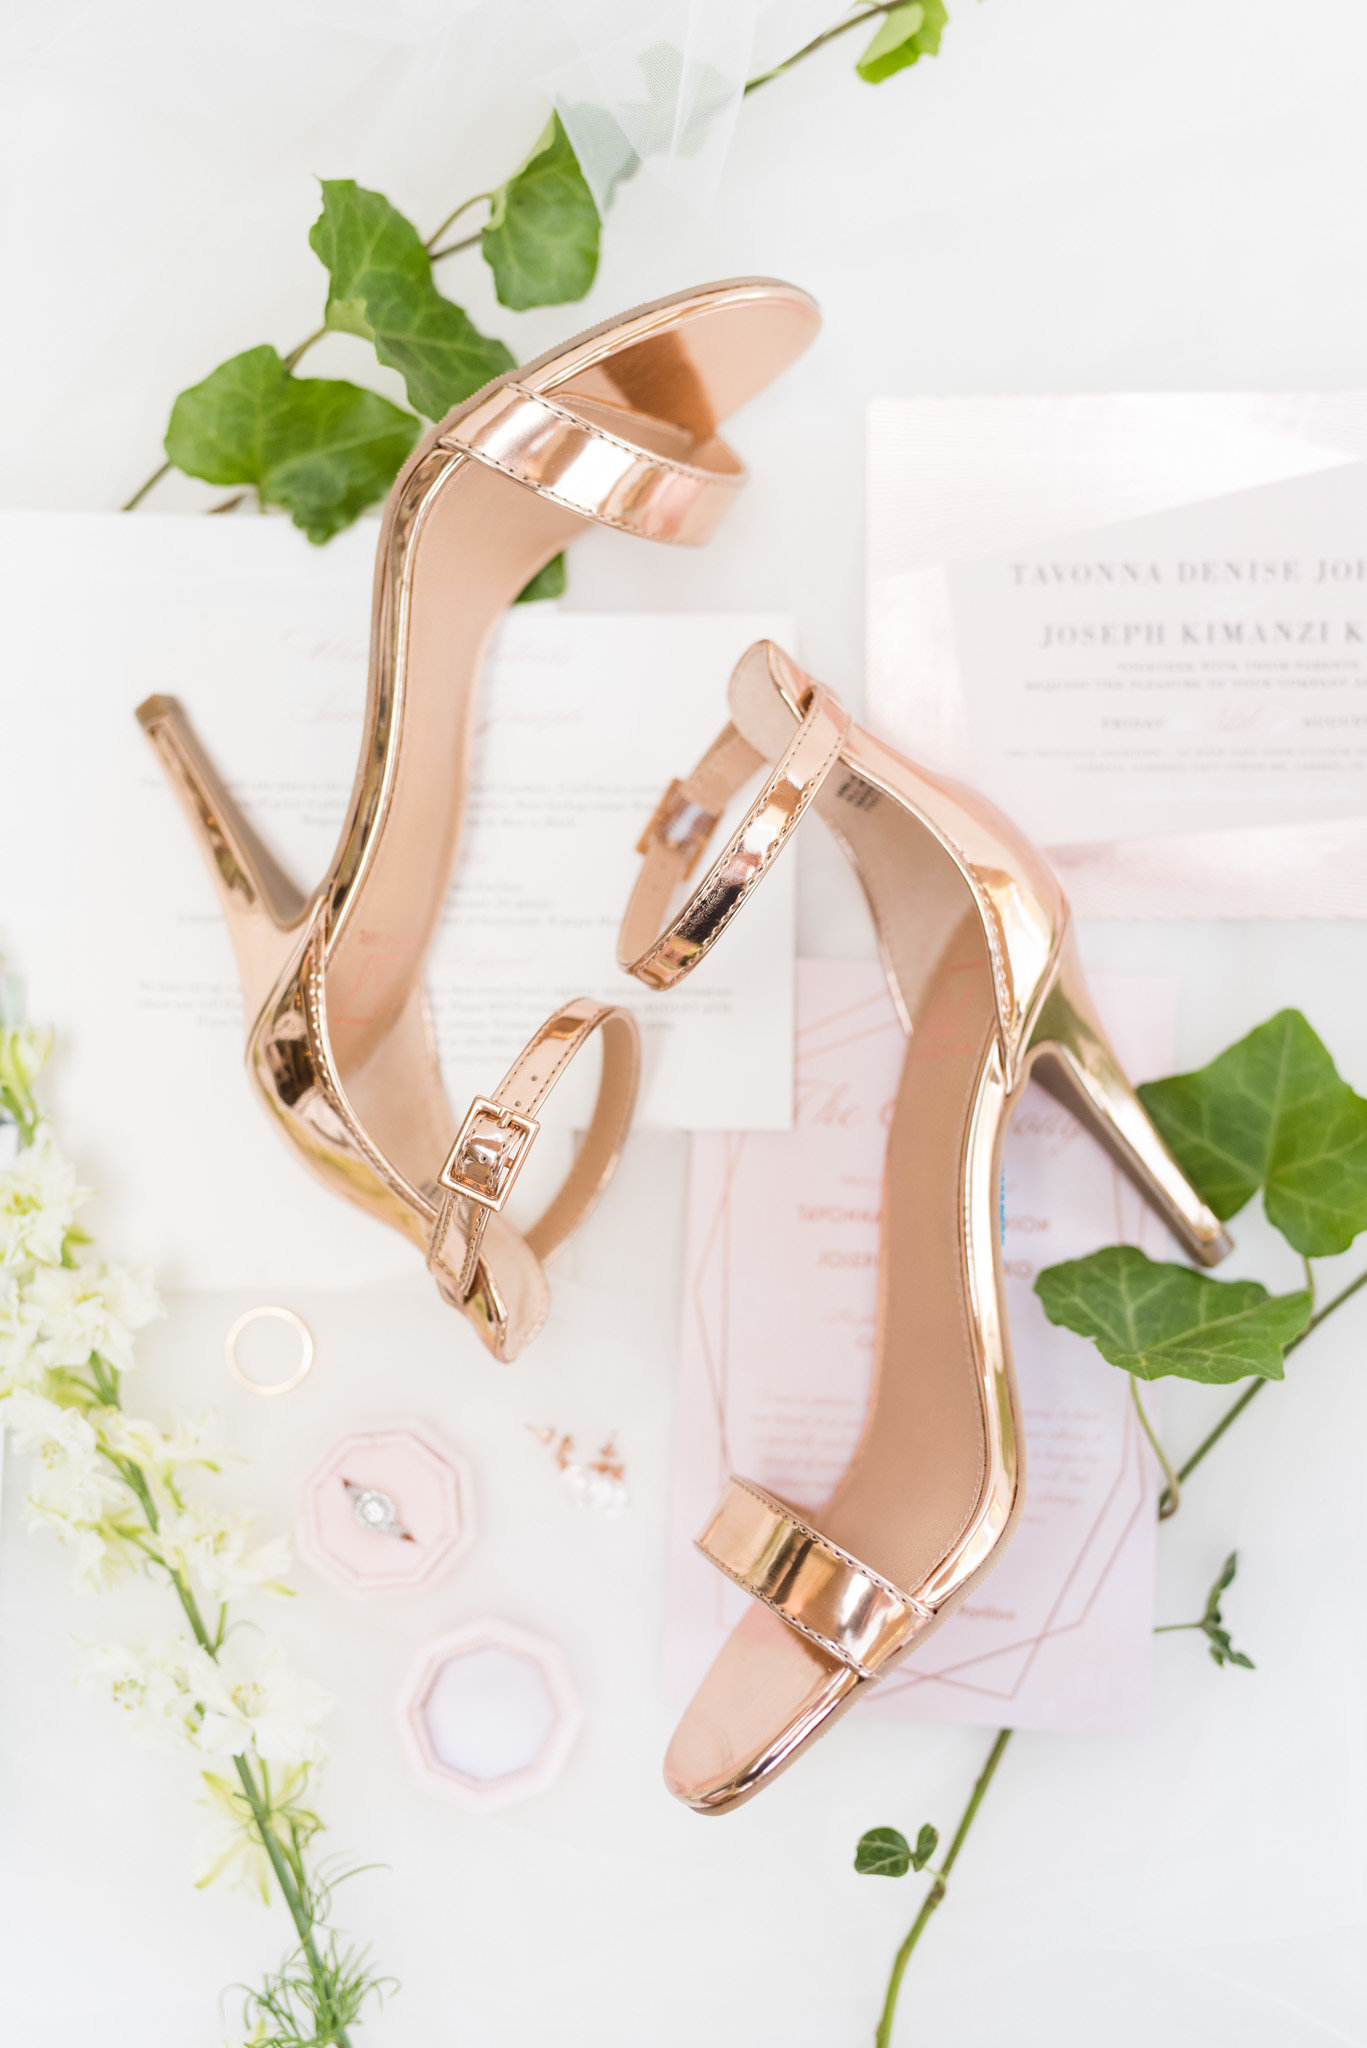 Bride's shoes sit on invitation suite.